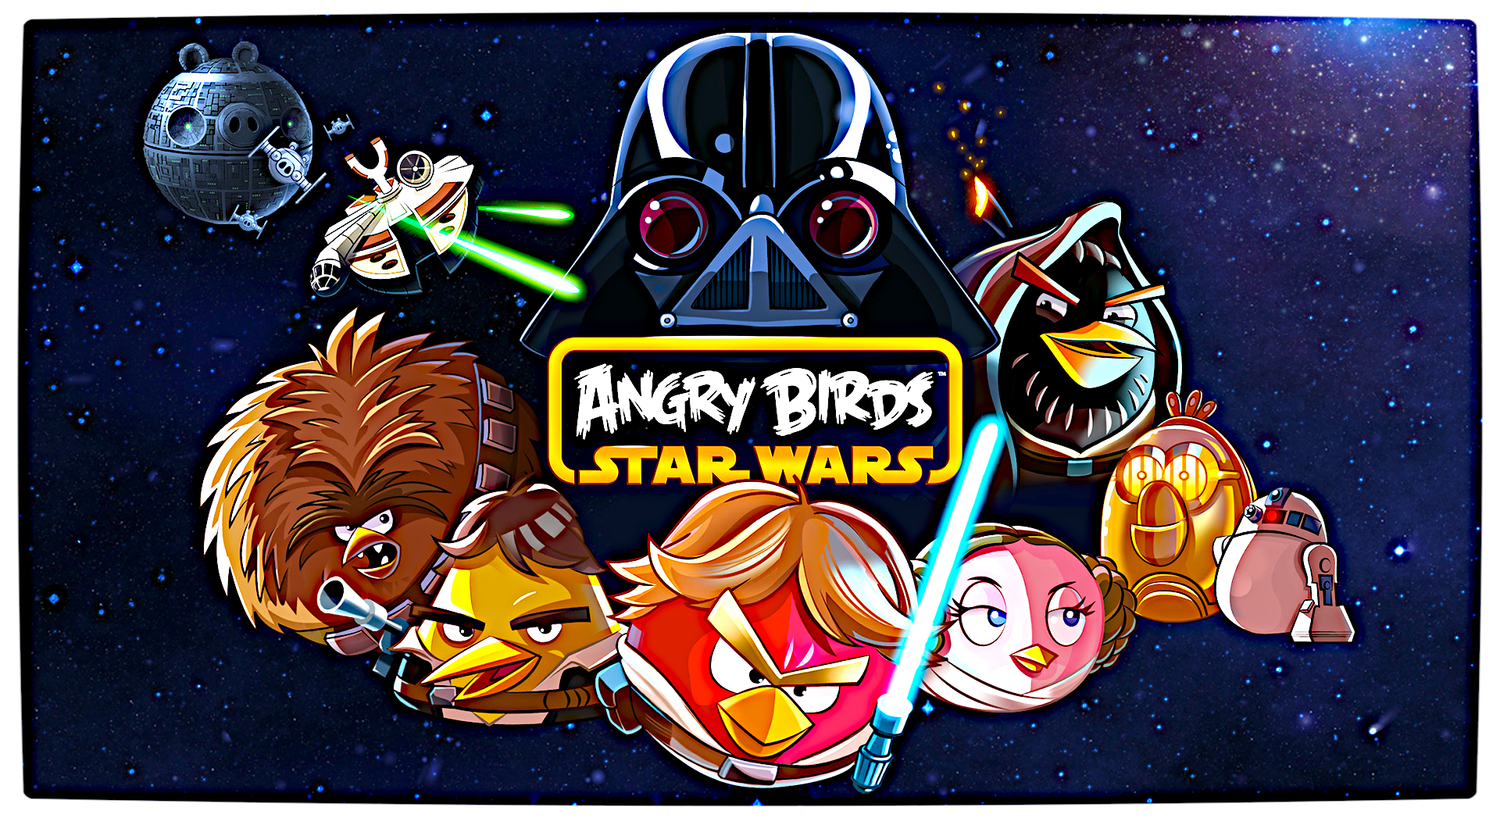 Angry Birds Star Wars DarkStation - Famous logos redesigned as angry birds characters